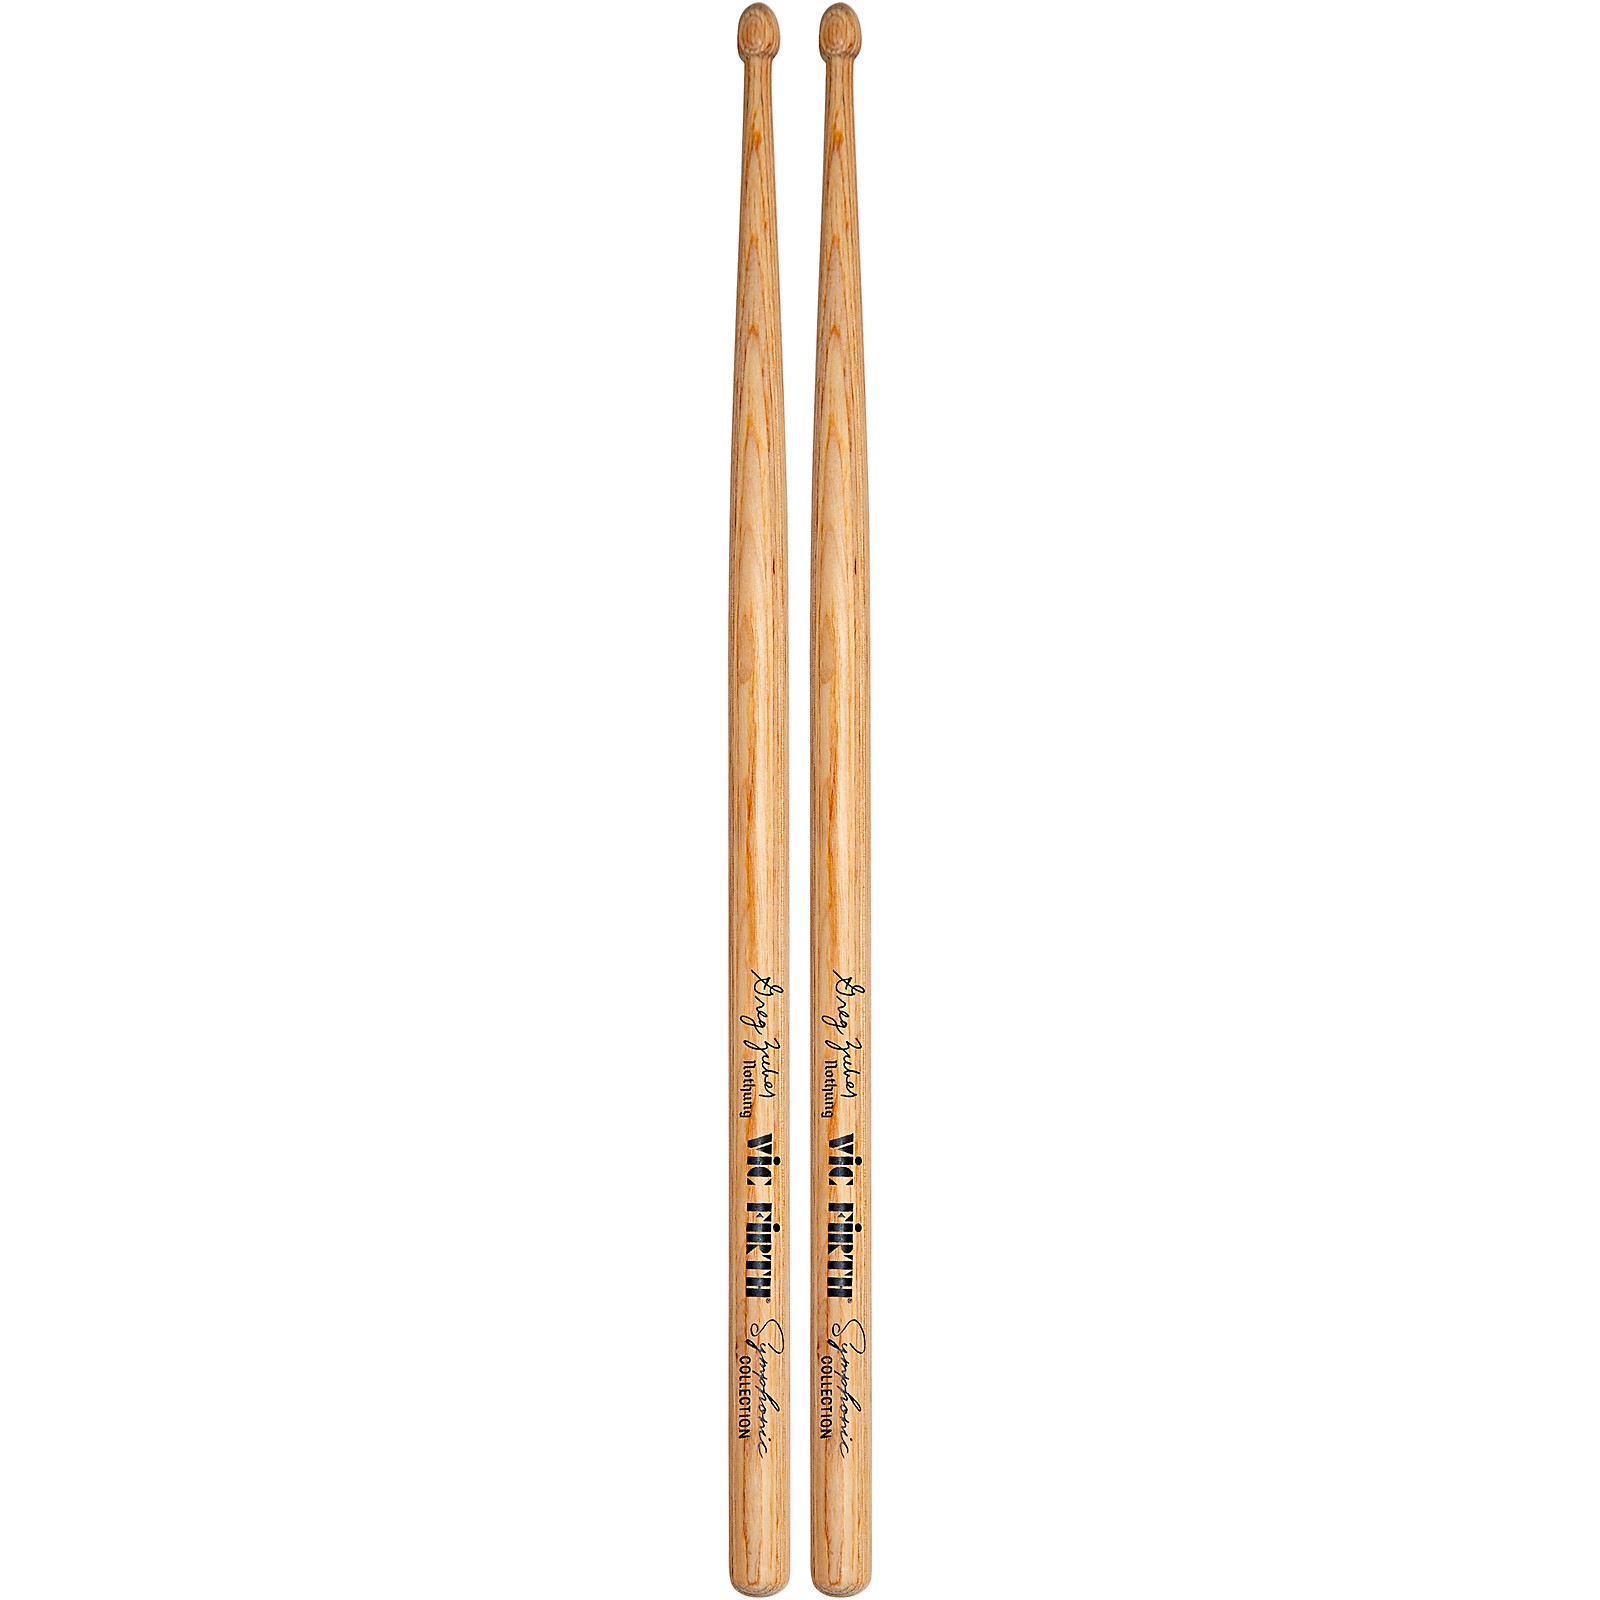 Vic Firth Symphonic Collection Greg Zuber Signature Nothung Laminated Birch Drum Stick